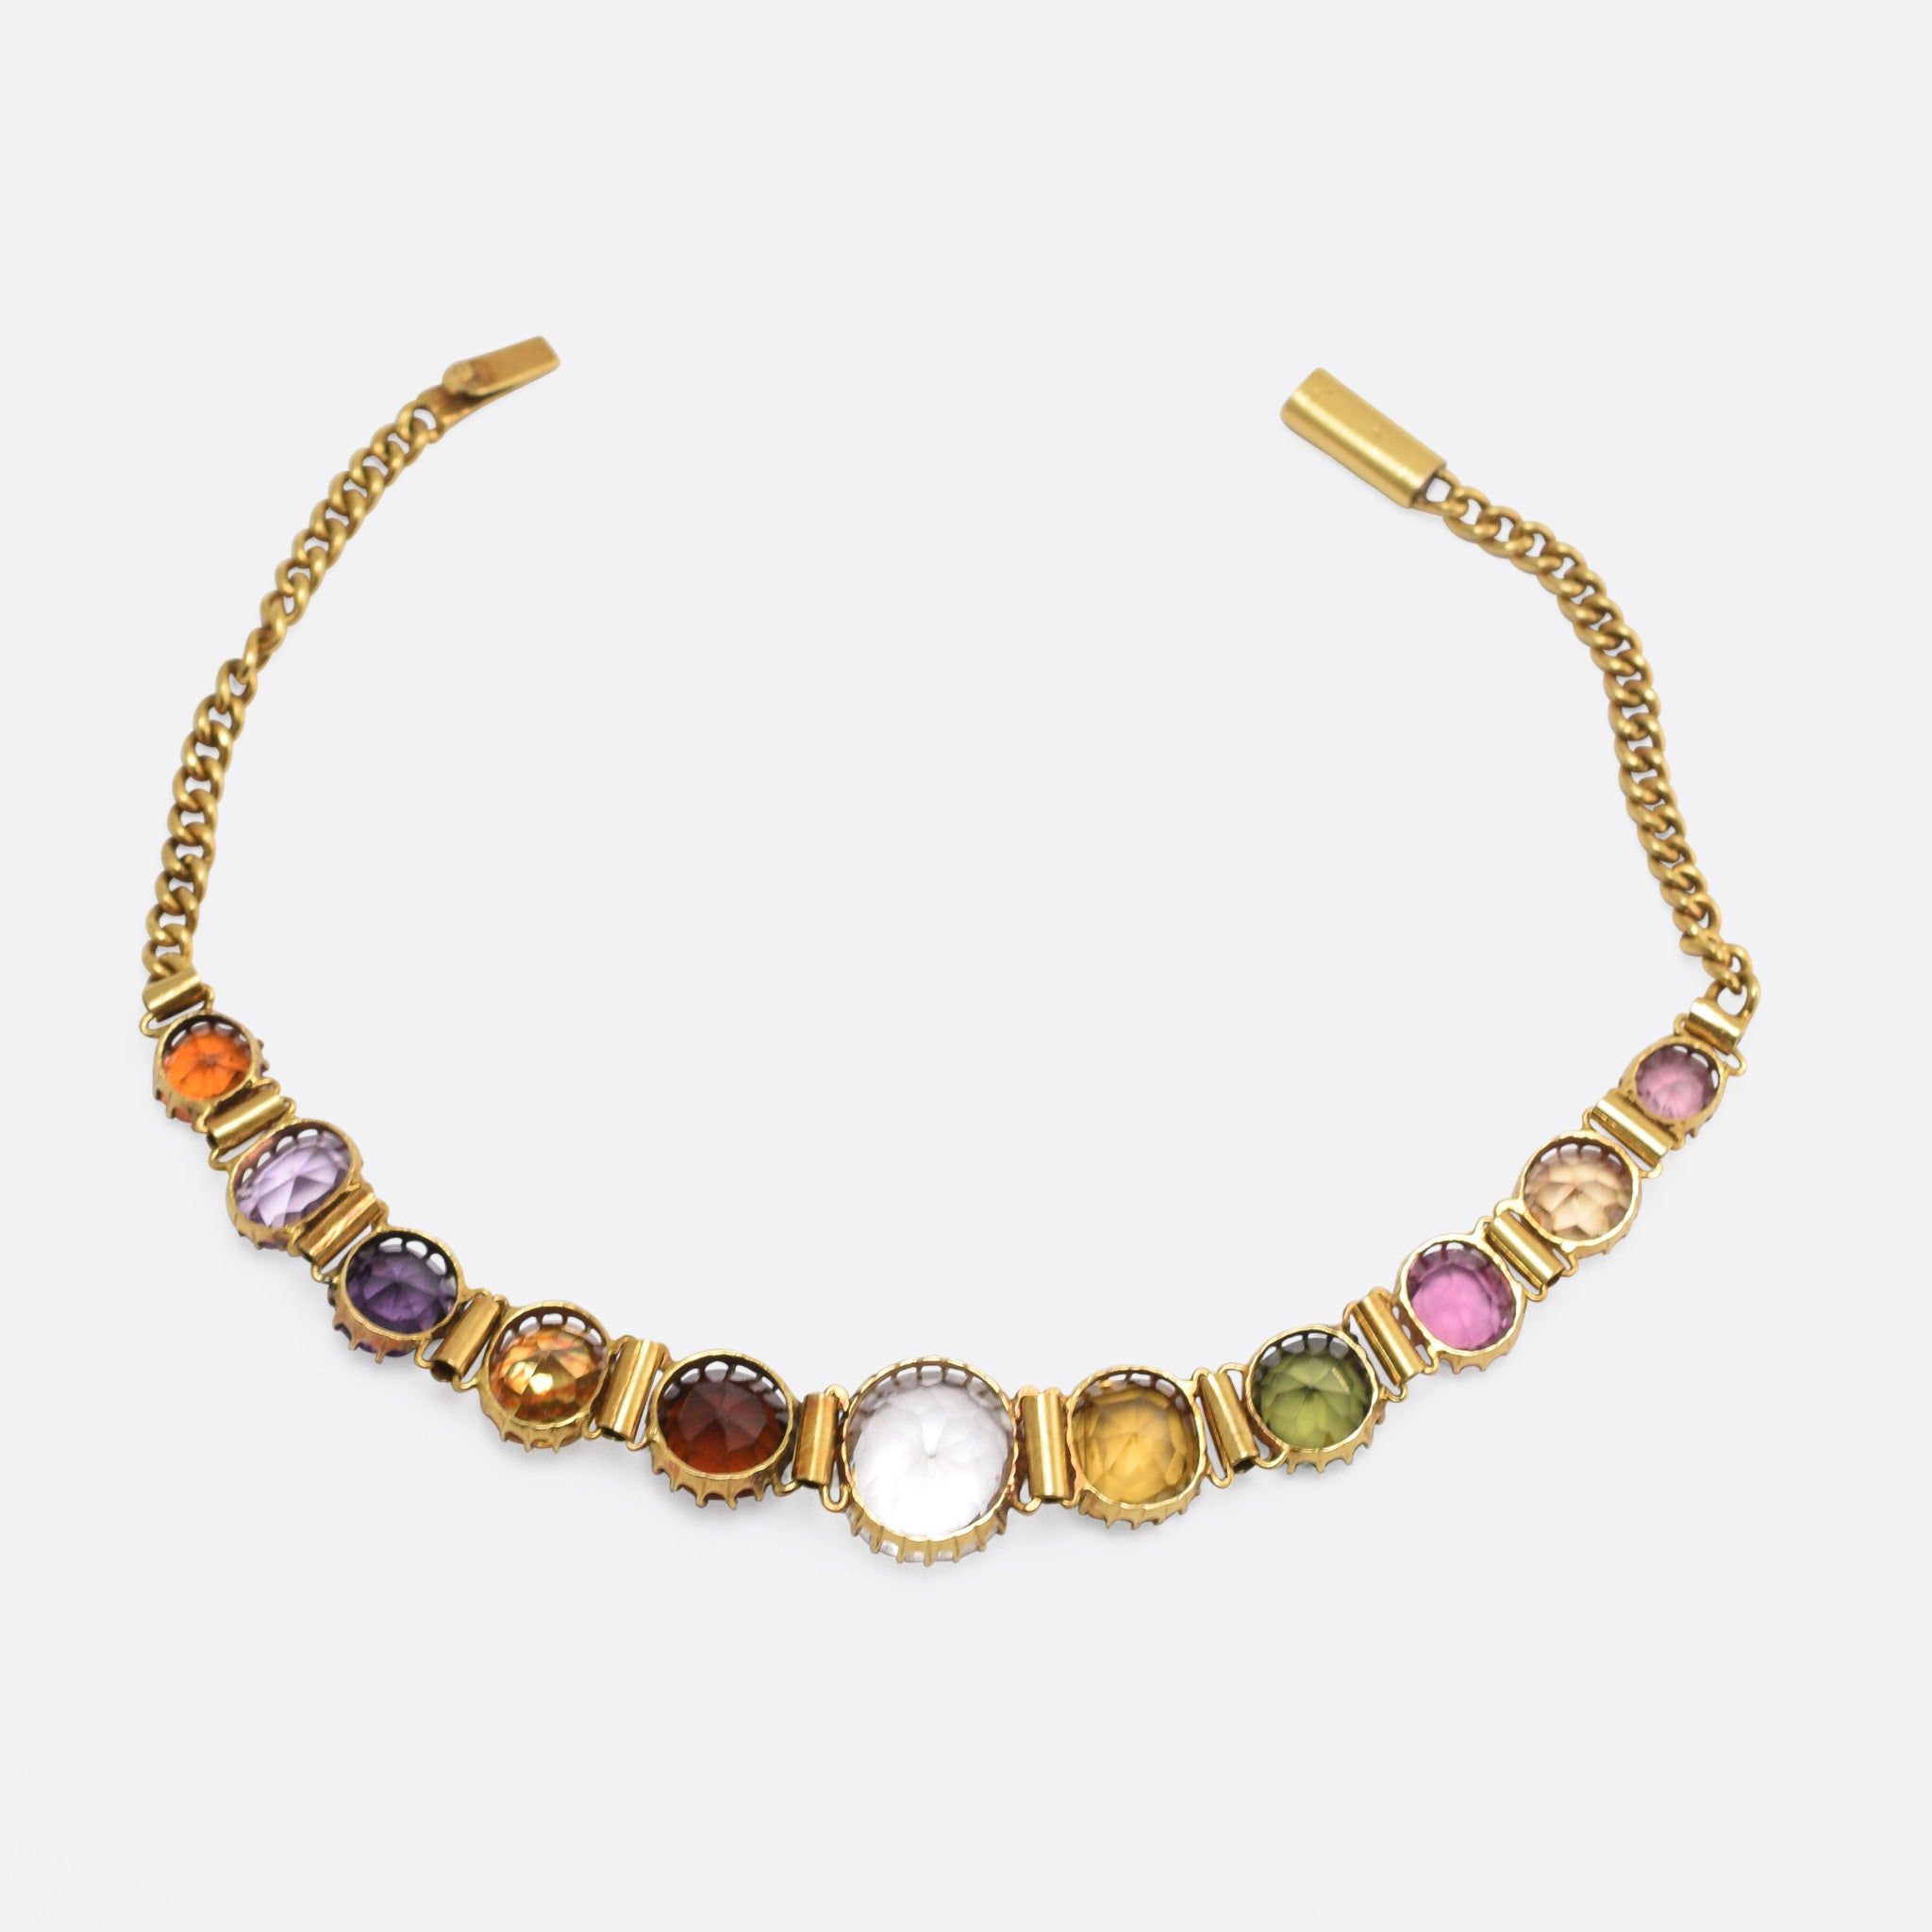 long multi product kiki sloane necklace jewellery gemstone mcdonough candy multicolour